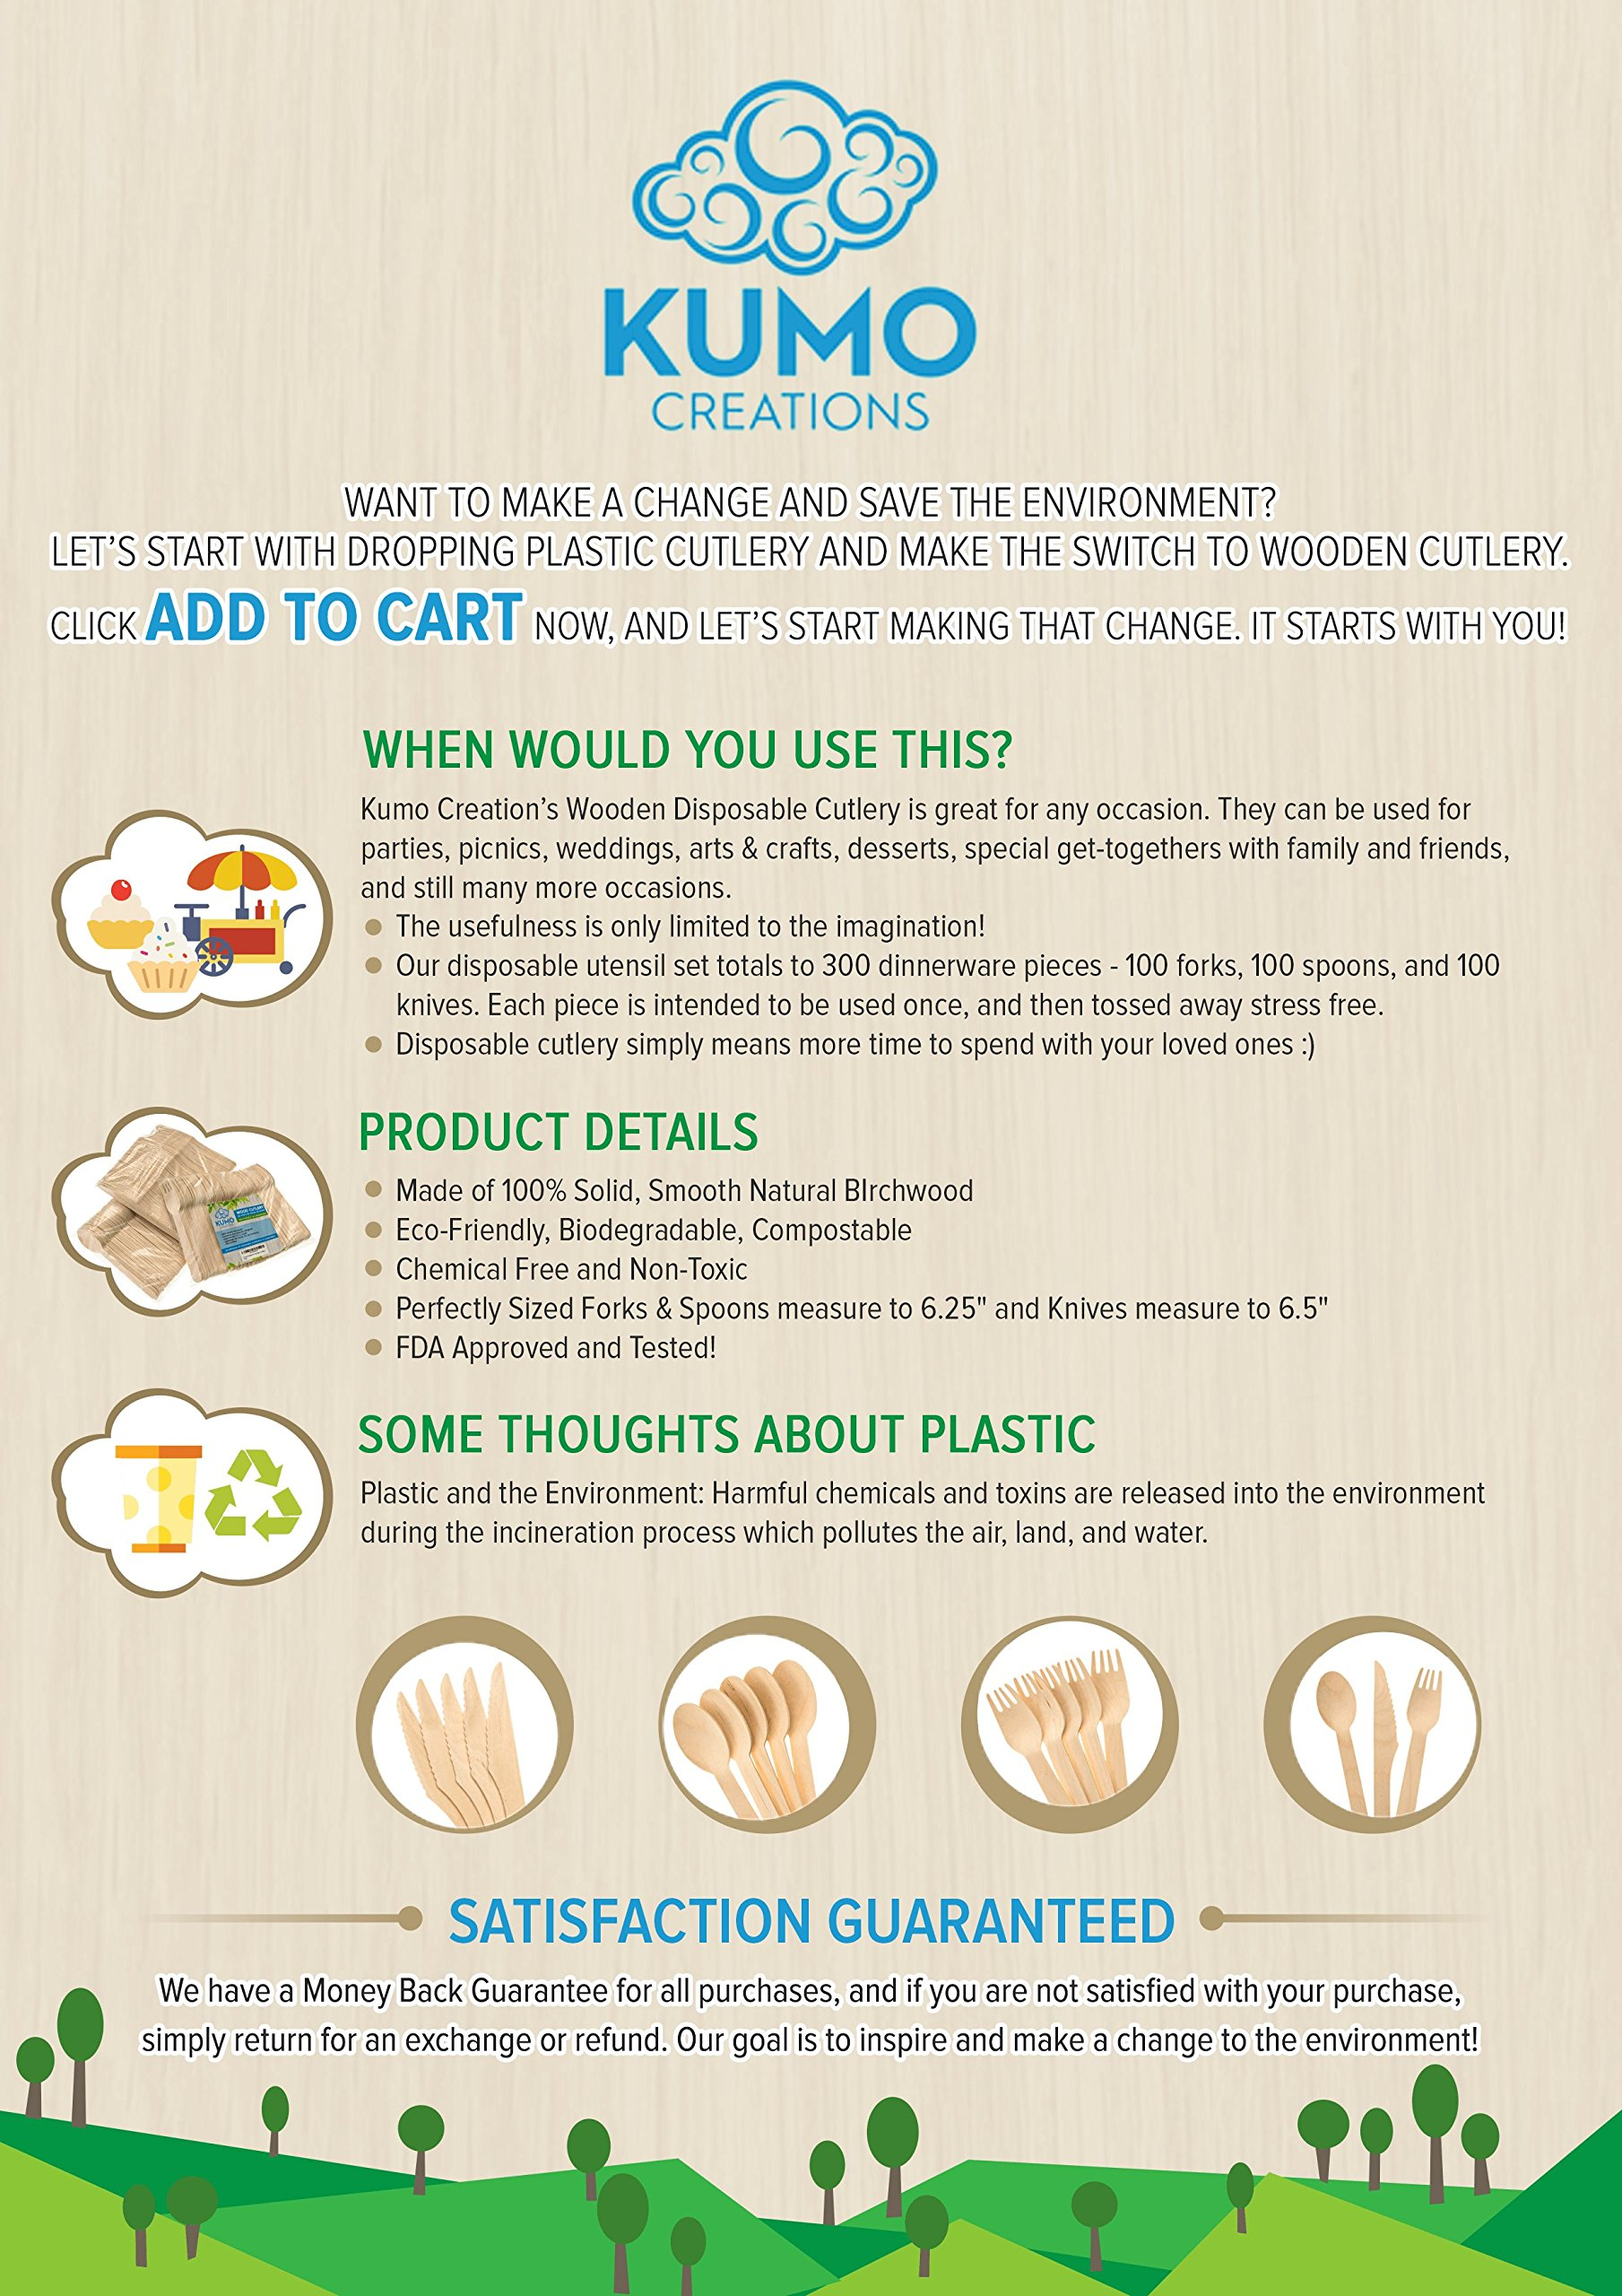 """Wooden Disposable Cutlery Combo Set – 300 pc - 100 Forks, 100 Spoons, 100 Knives, 6"""" Utensils - Eco Friendly, Biodegradable, Compostable – Parties, Weddings, Gatherings – FORGET Plastic, GO GREEN! by KUMO Creations (Image #7)"""